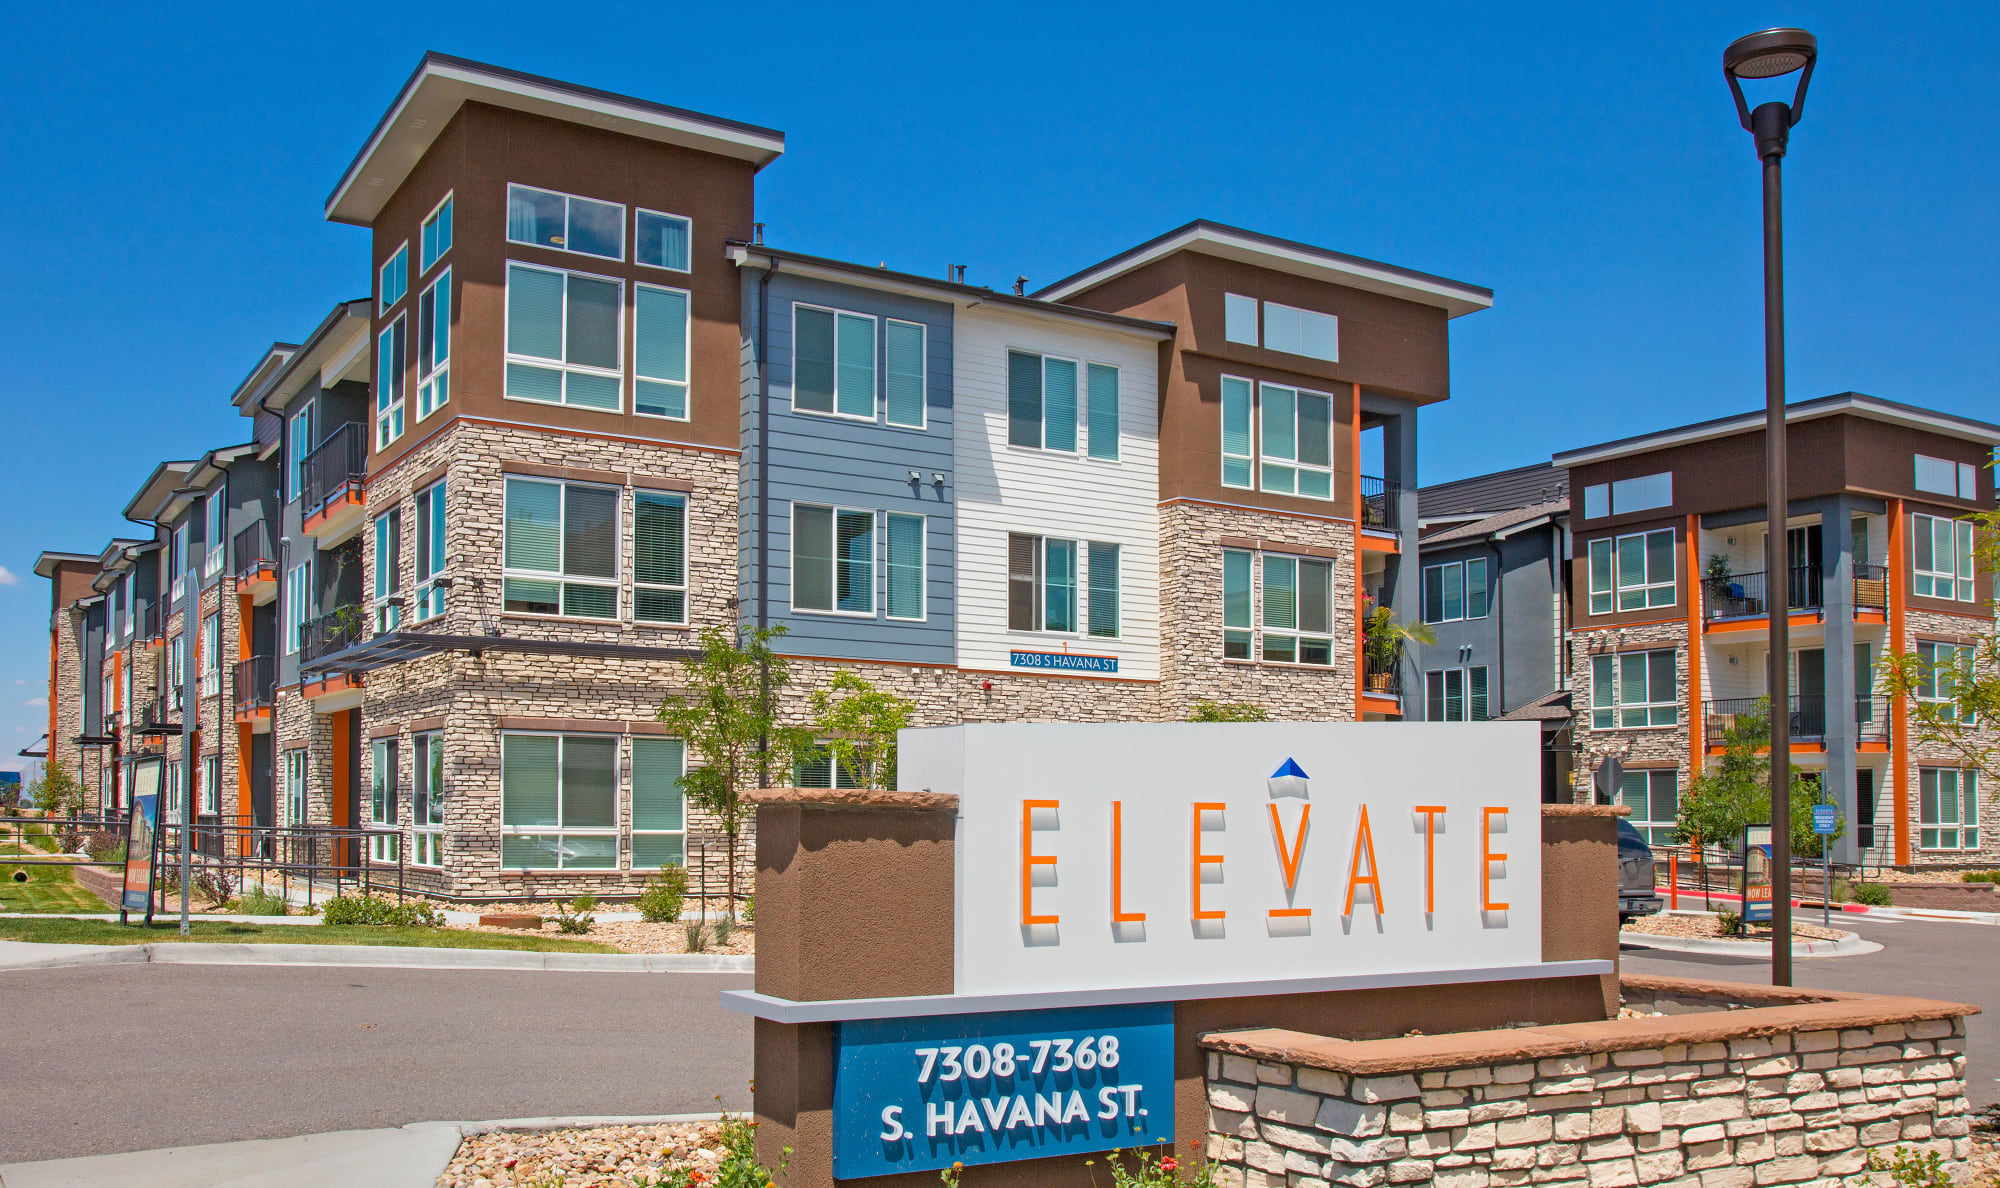 Exterior of building at Elevate in Englewood, Colorado